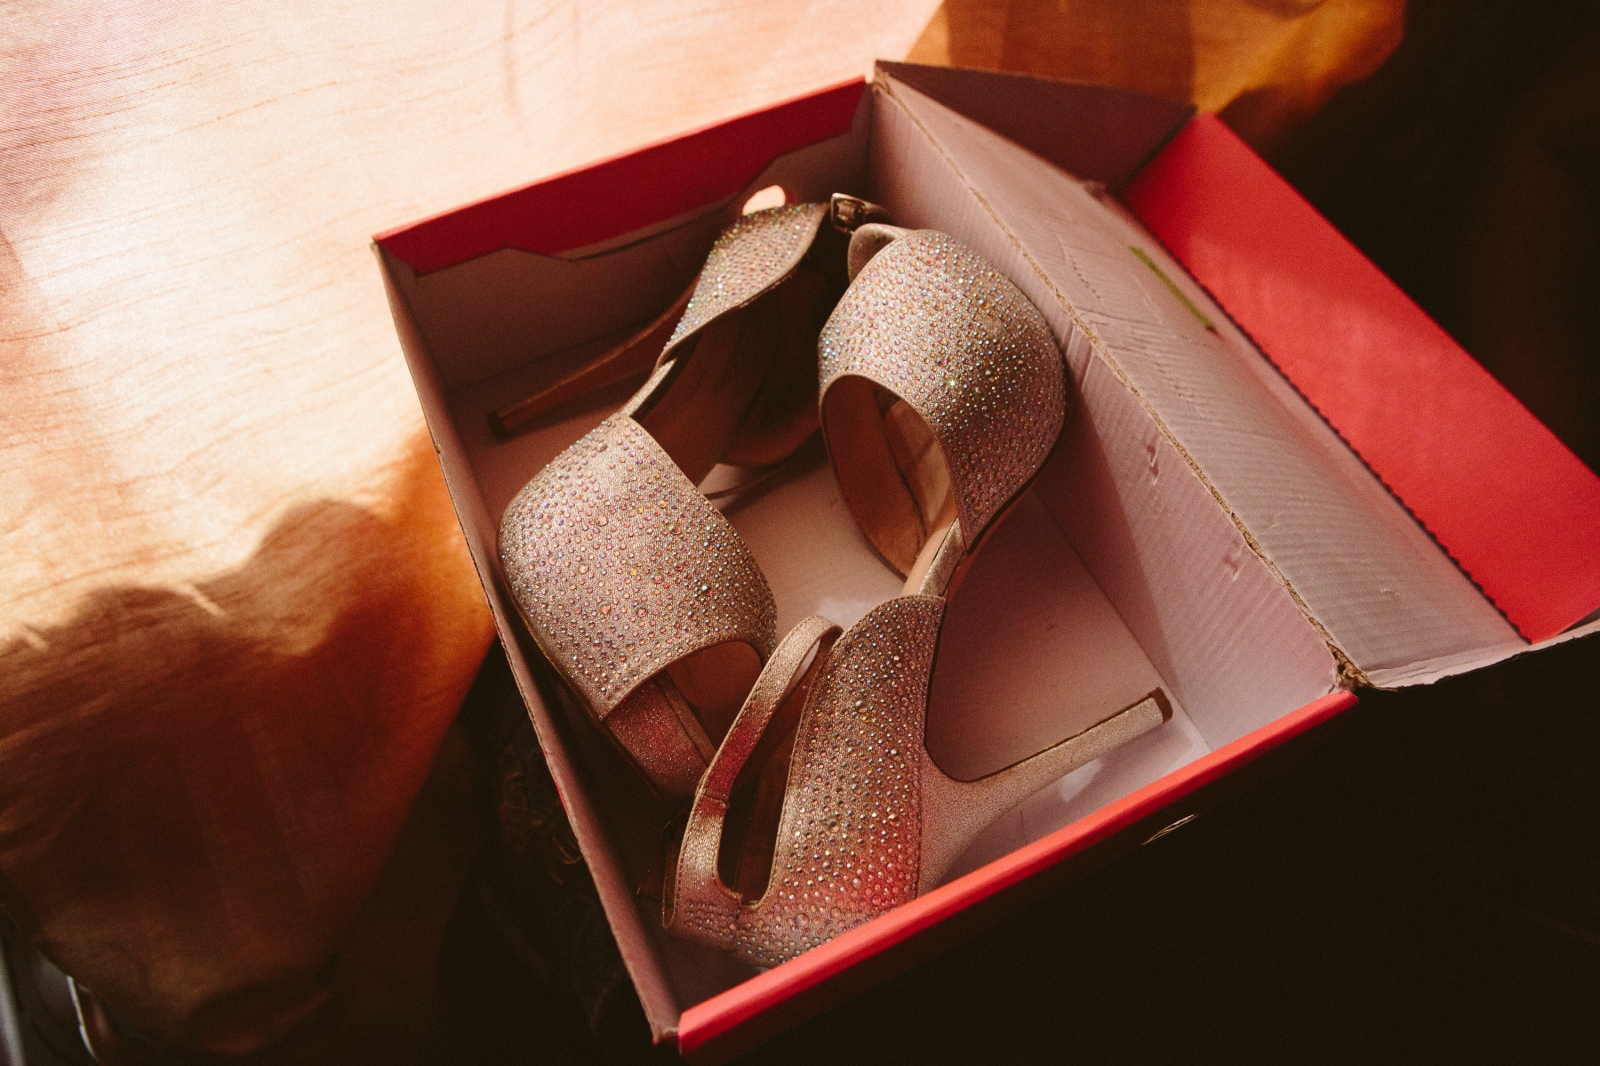 Fey's prom shoes.